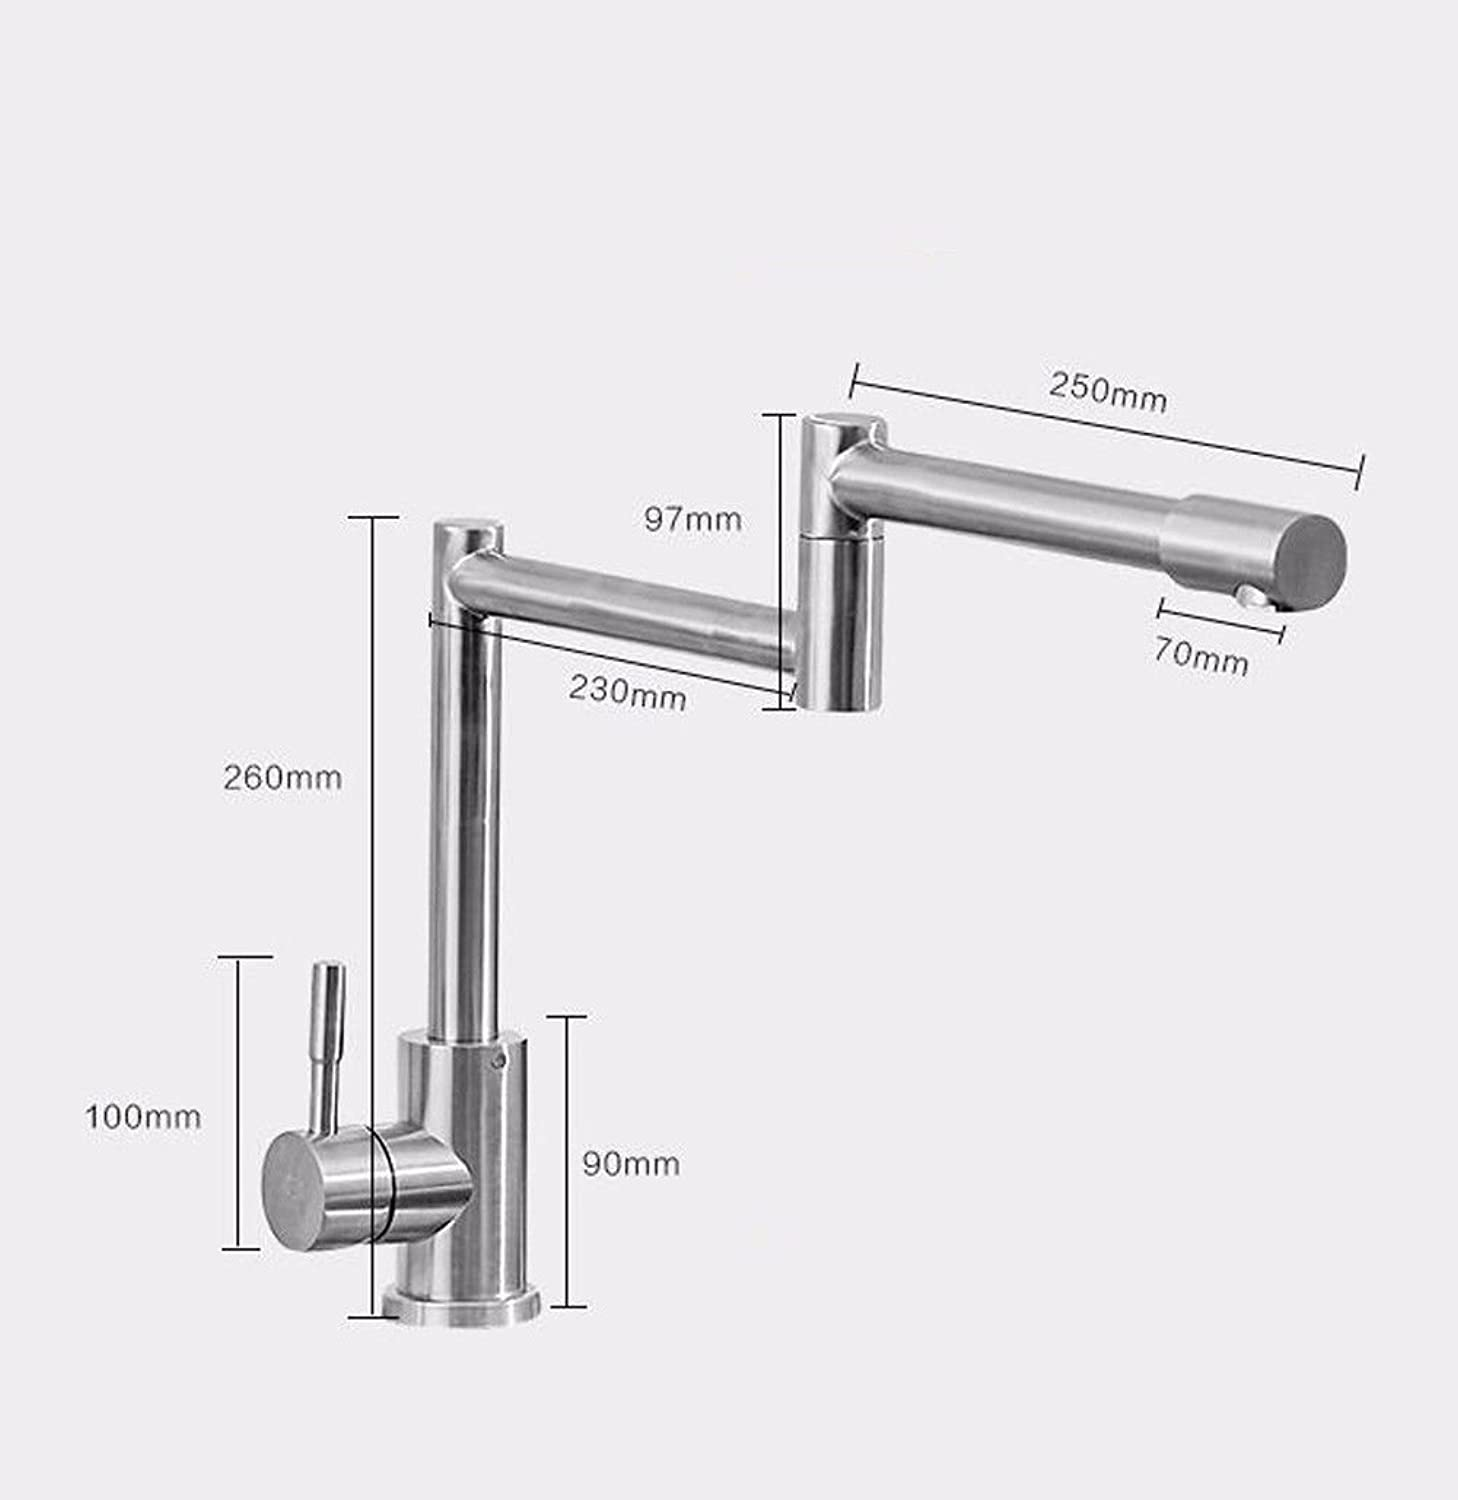 NewBorn Faucet Kitchen Bathroom Sink Mixer Tap Dish Washing Basin To redate The Dish Basin Sink Mixer 304 Stainless Steel Water Tap Hot Cold Single Cold C